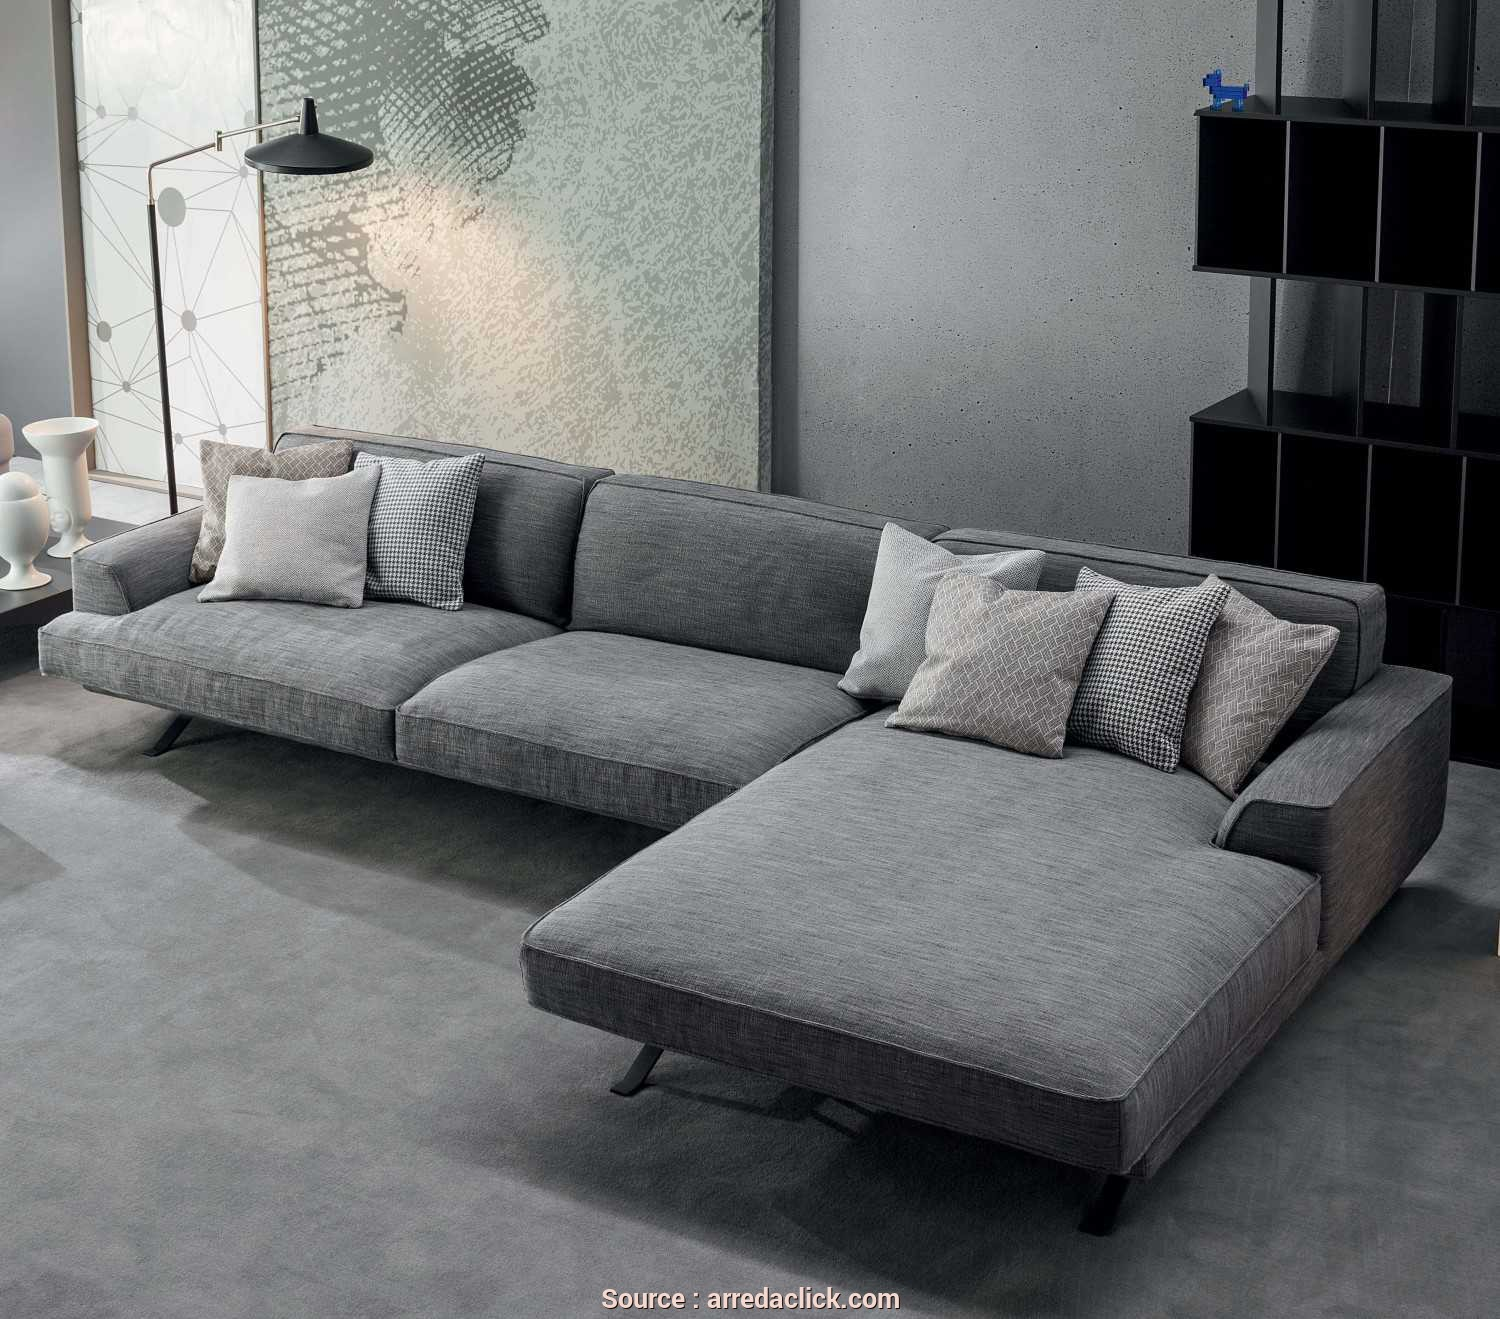 Divano Moderno, Chaise Longue, Migliore Slab Plus- Trendy Fabric Sofa With Chaise Longue · Divano Moderno, Chaise Longue